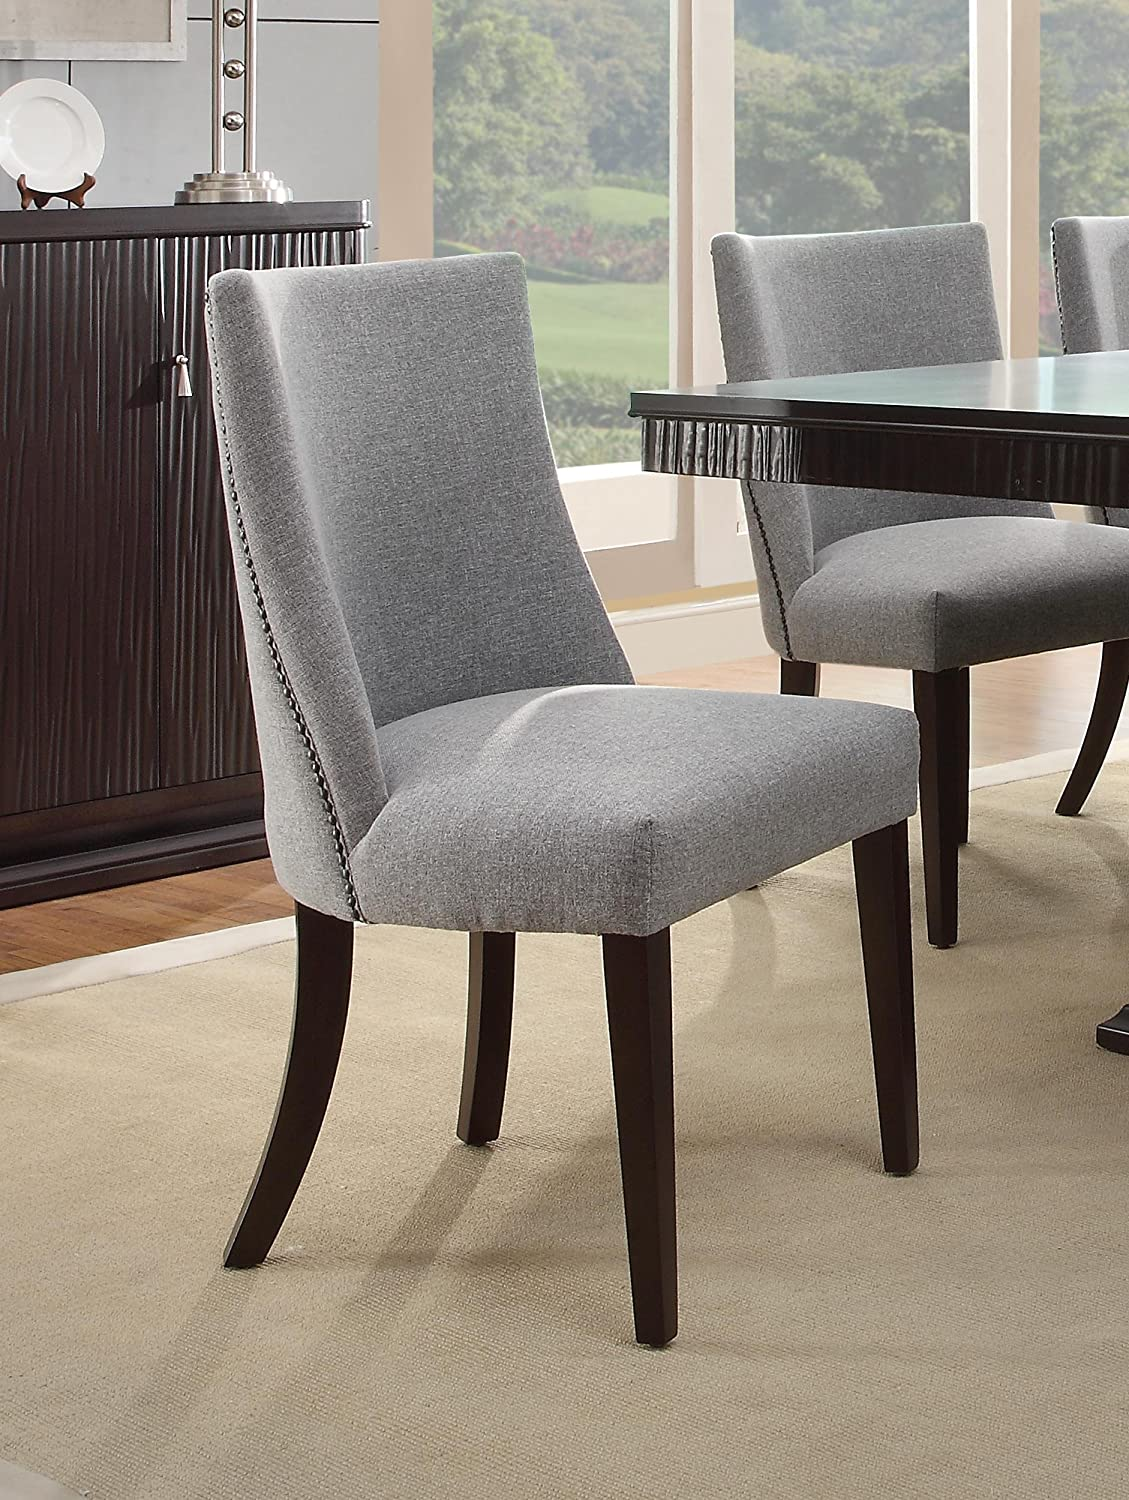 grey dining room chair. Amazon.com - Homelegance 2588S Accent/Dining Chair (Set Of 2), Blue/Grey Chairs Grey Dining Room